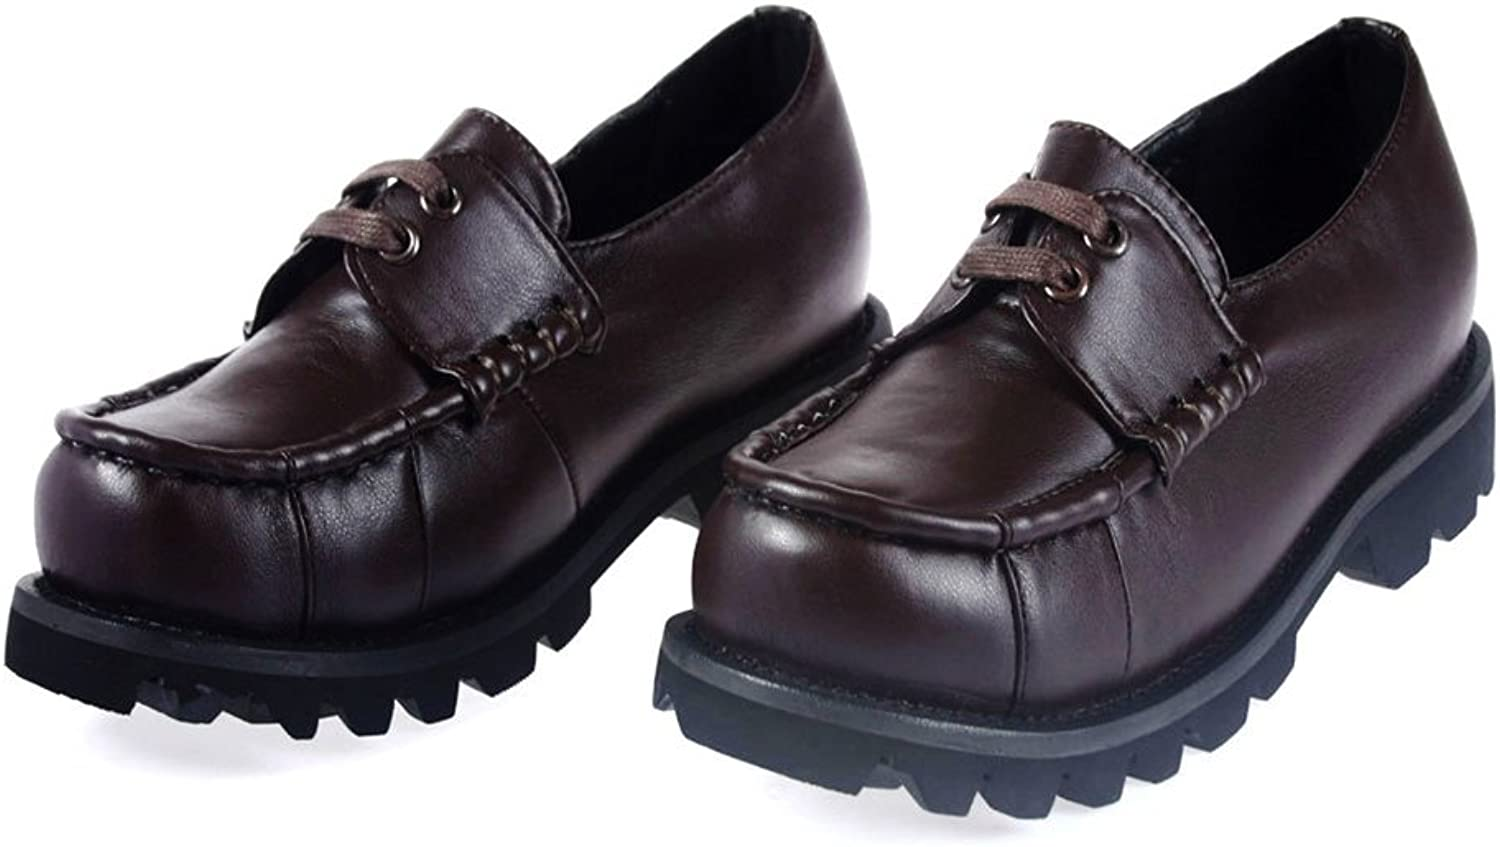 Mtxc Women's Final Fantasy£oType-0 Cosplay Cater Uniform shoes Brown